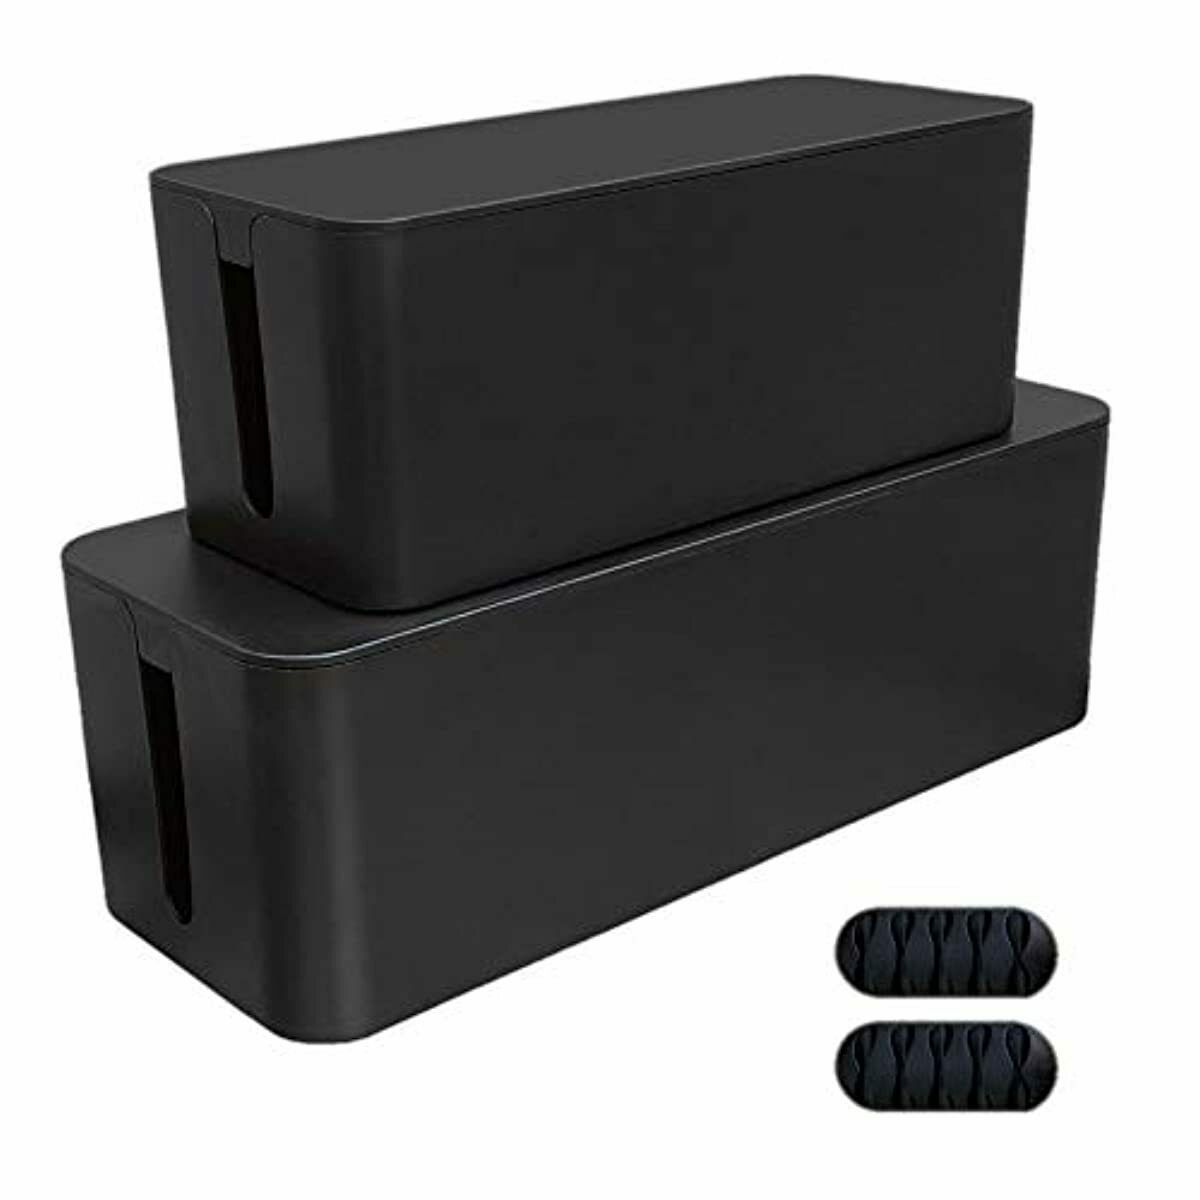 Cable Management Box, 2 Boxes with Free 2x Cable Clip and Tie, Power Board Organ